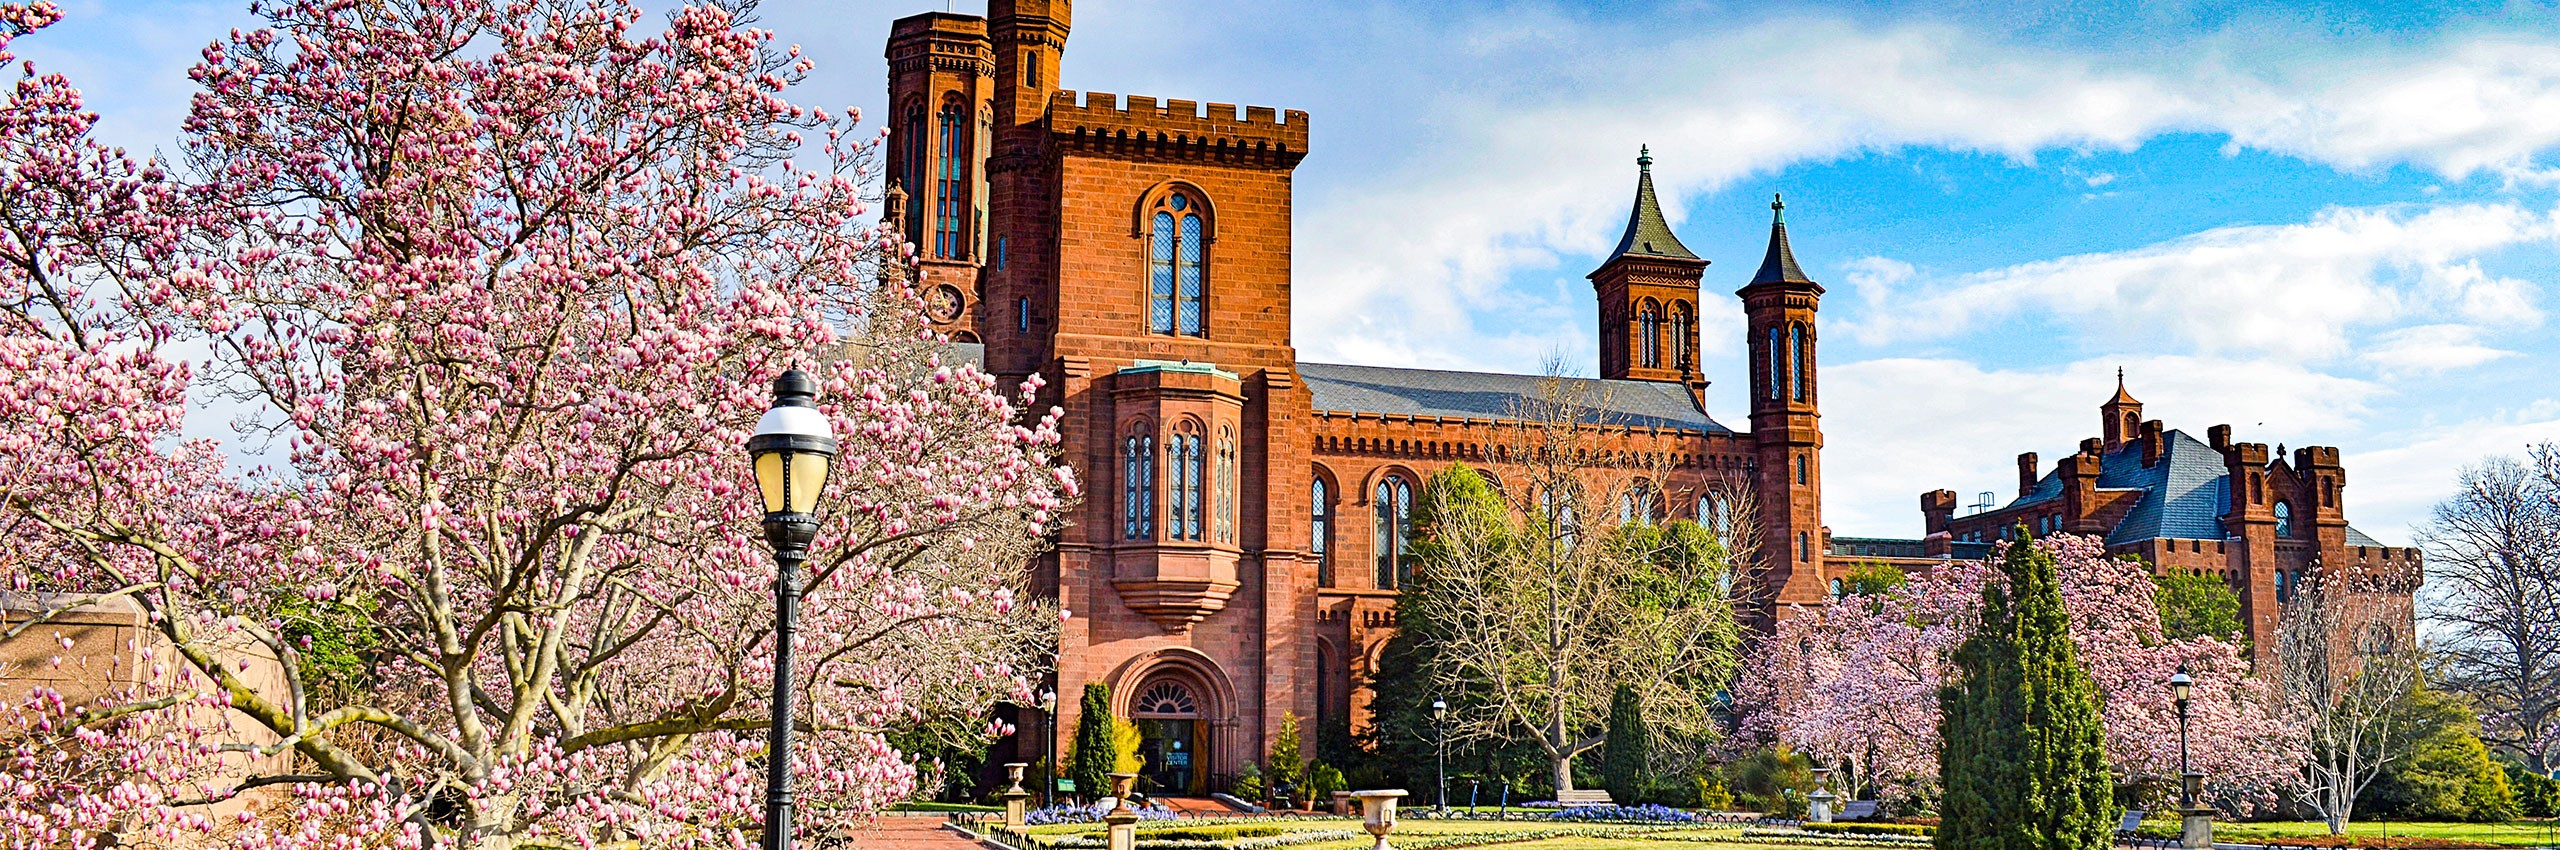 Smithsonian Castle in spring.